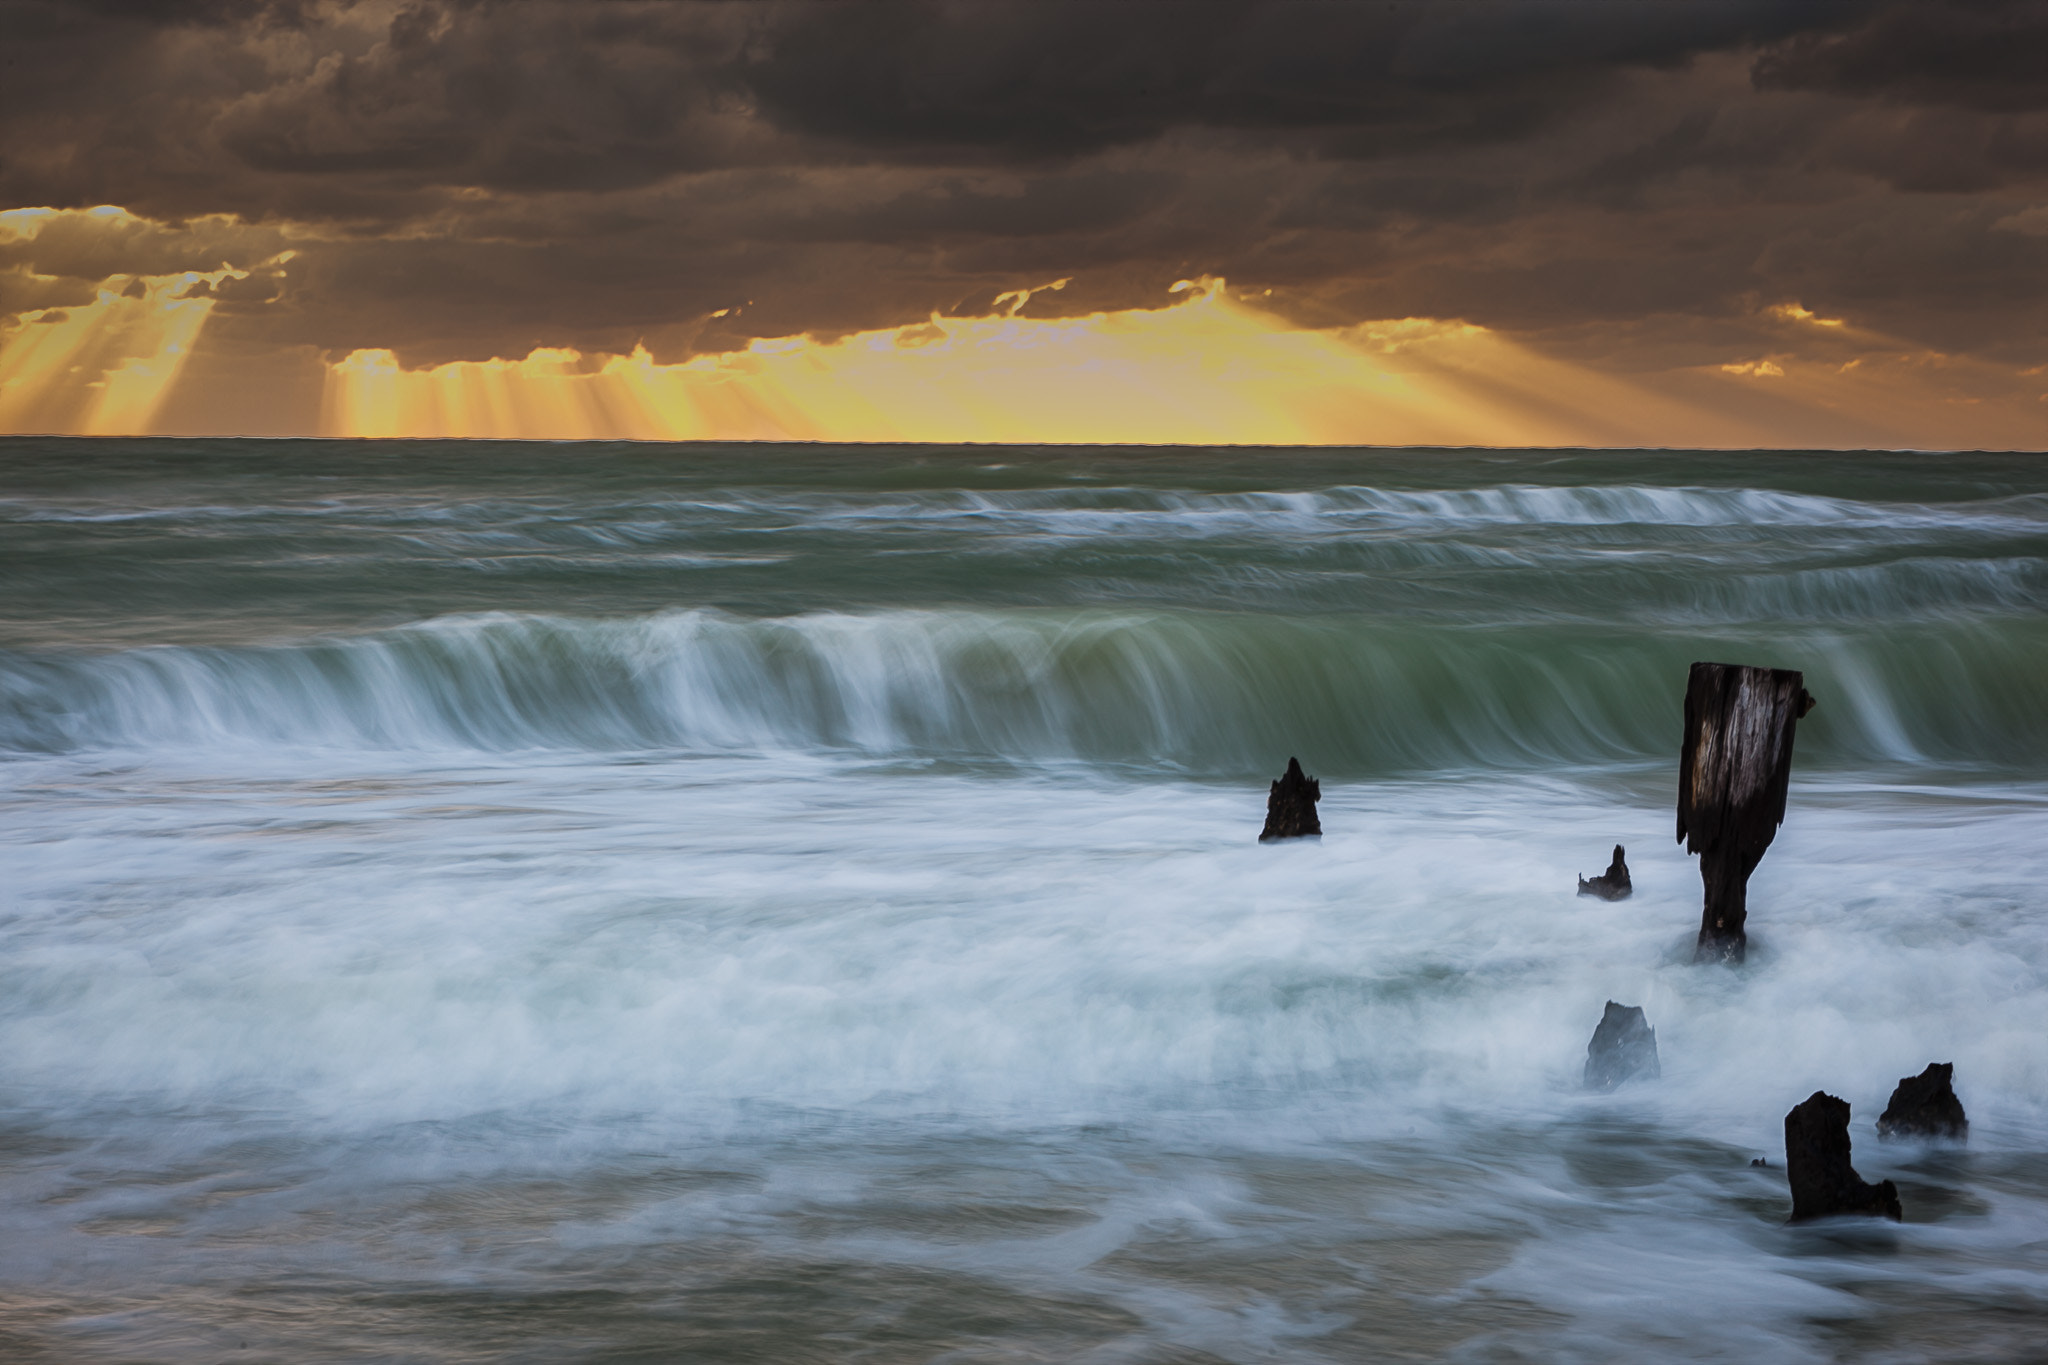 Photograph Stormy Times by Ingo Meckmann on 500px